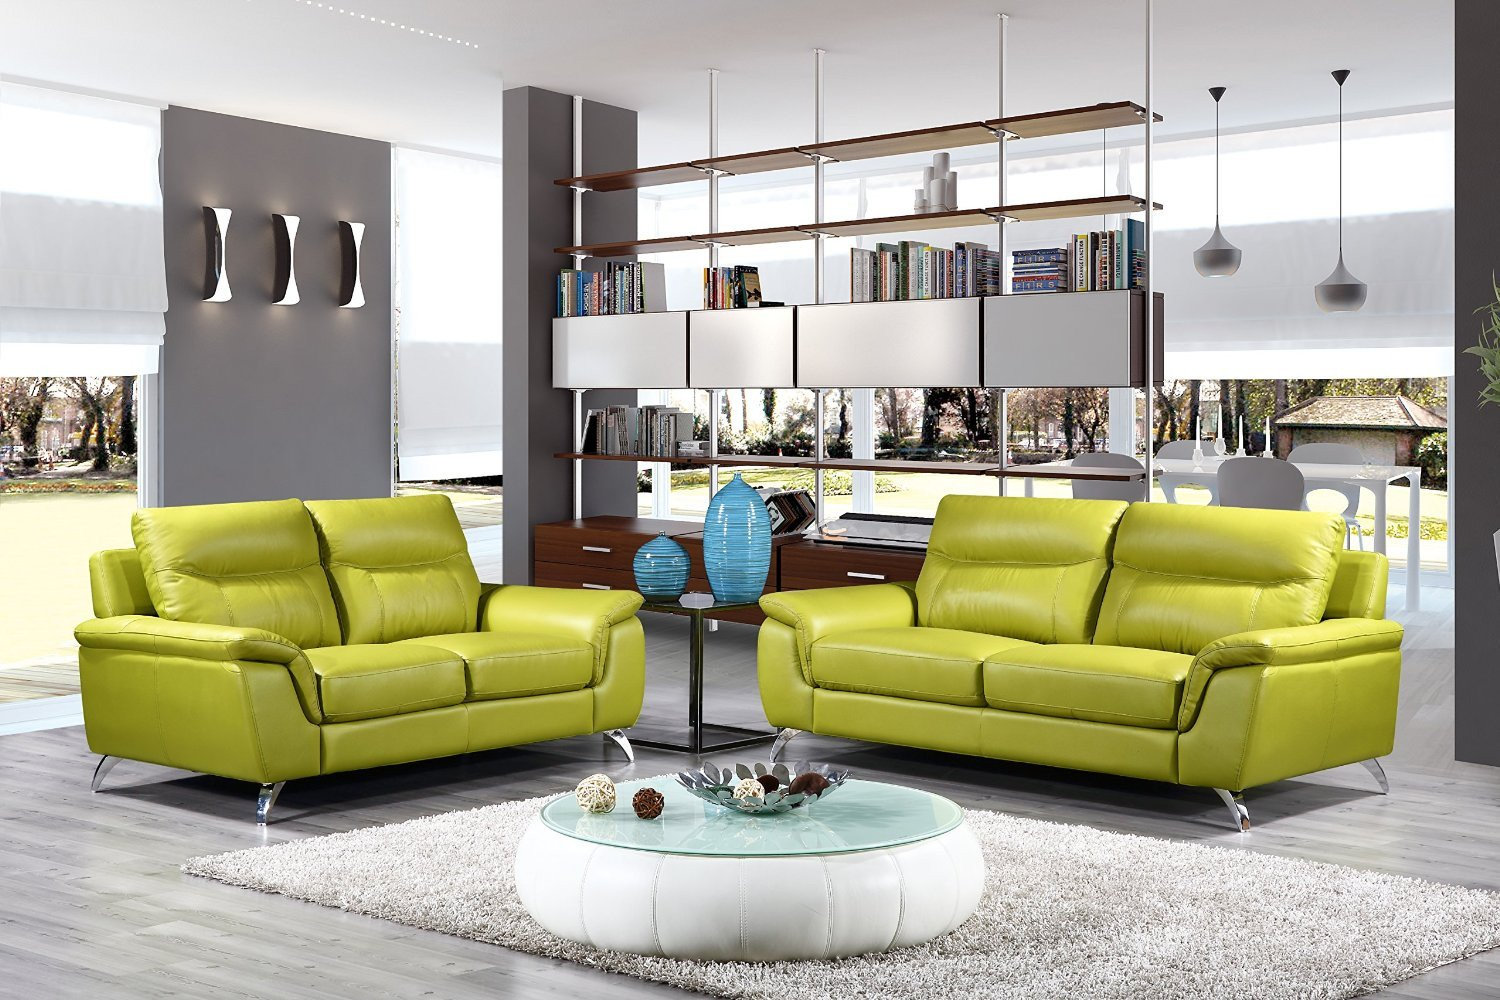 Lime Green Living Room Decor Beautiful Lime Green Living Room Design with Fresh Colors